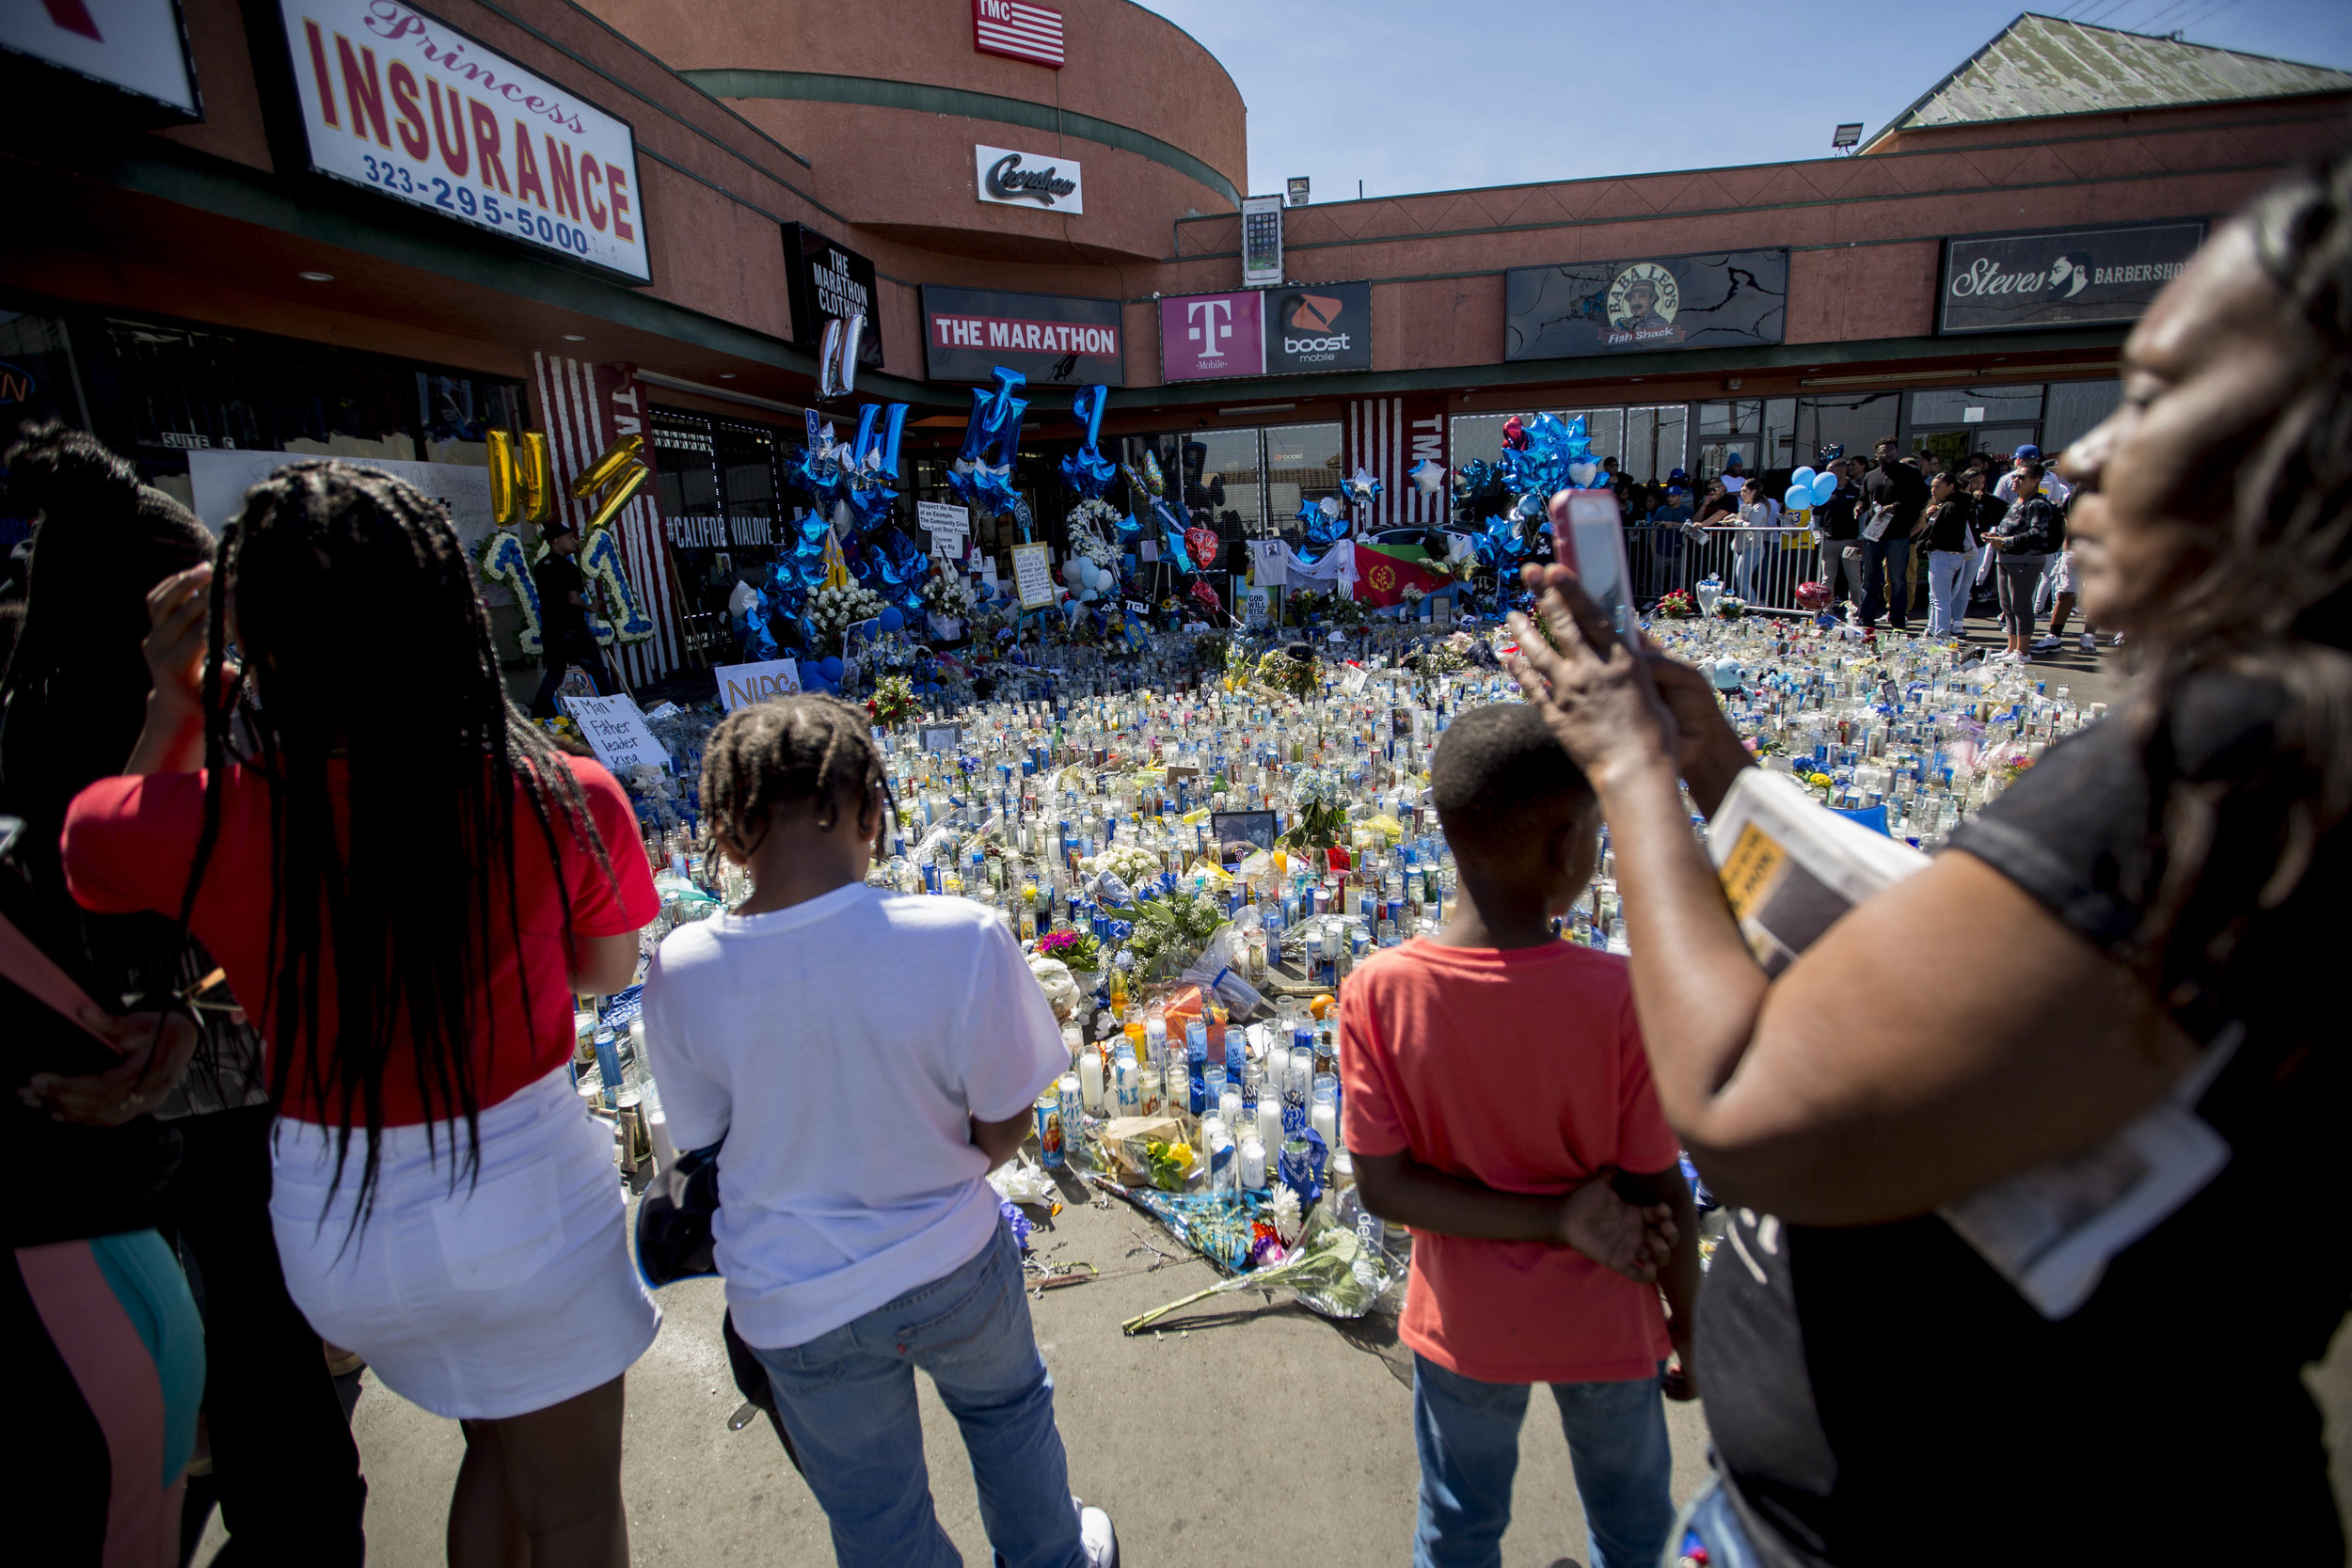 People visit Nipsey Hussle's memorial at The Marathon Clothing store on Slauson Avenue in Los Angeles, California on Wednesday, April 6, 2019. The 33-year-old rapper was murdered on March 31 in front of The Marathon Clothing store which he owned. (Jose Lopez)